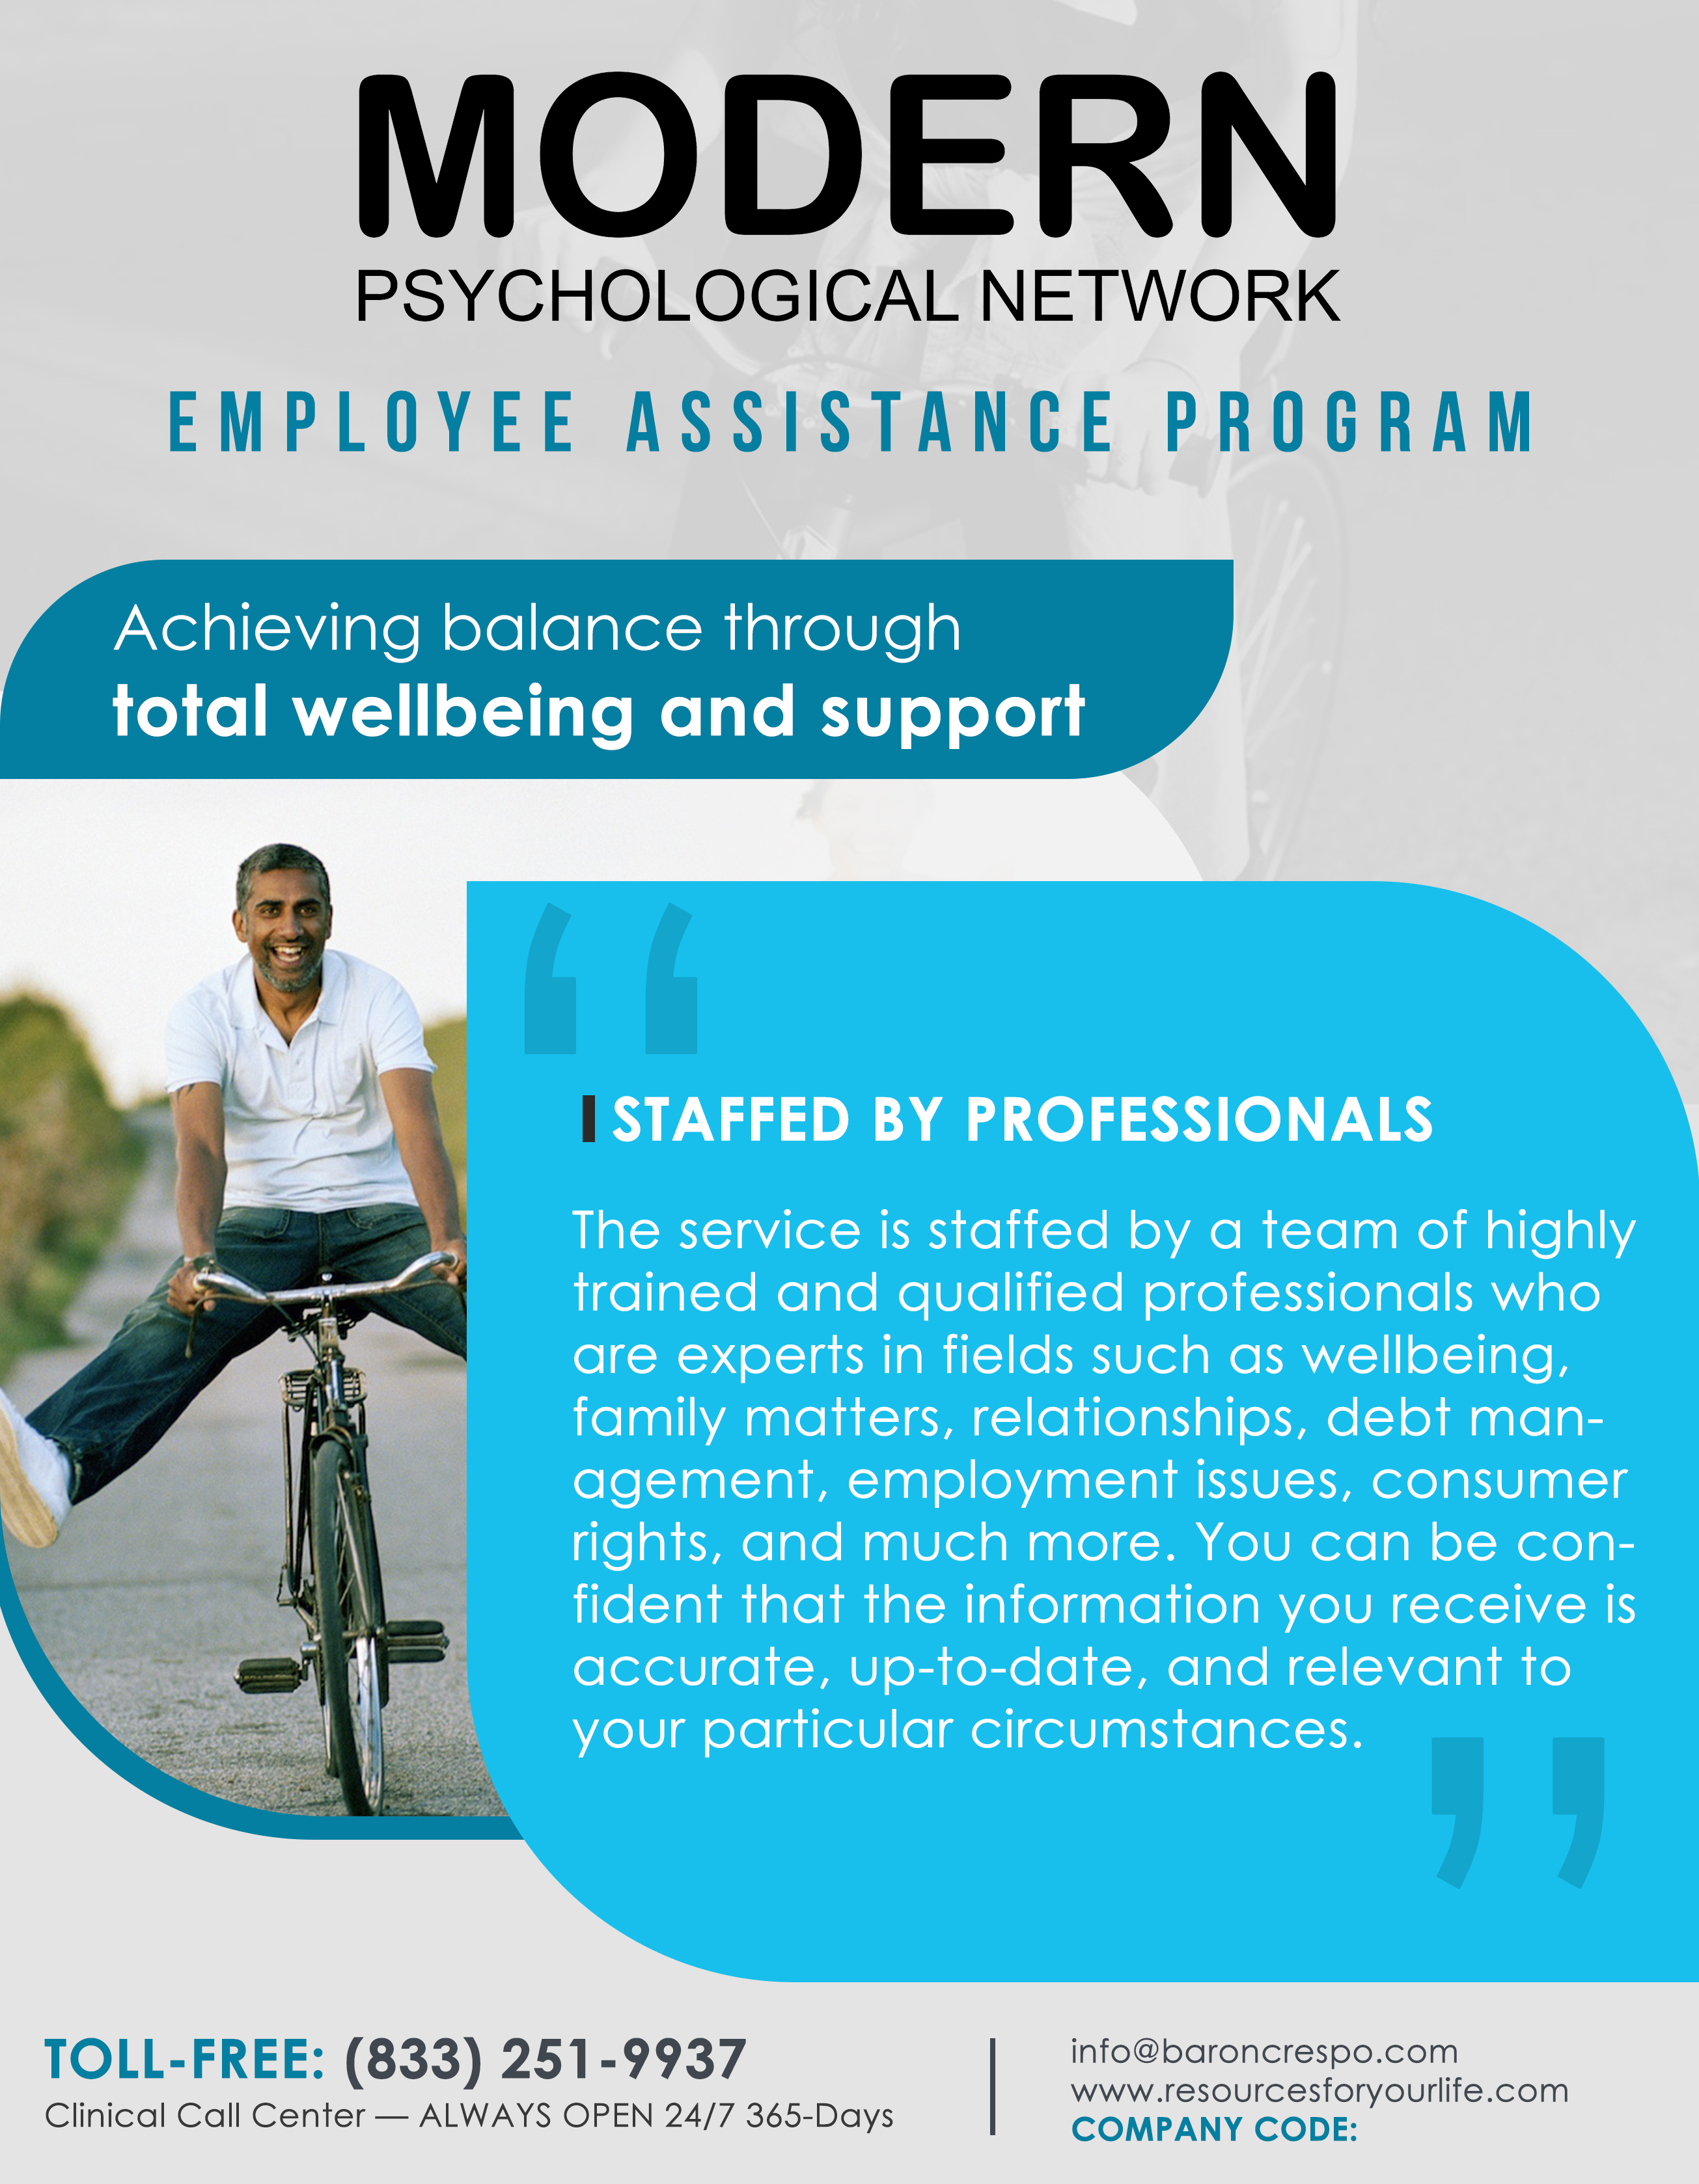 Modern Psychological Network Launches Nationwide Employee Assistance Program